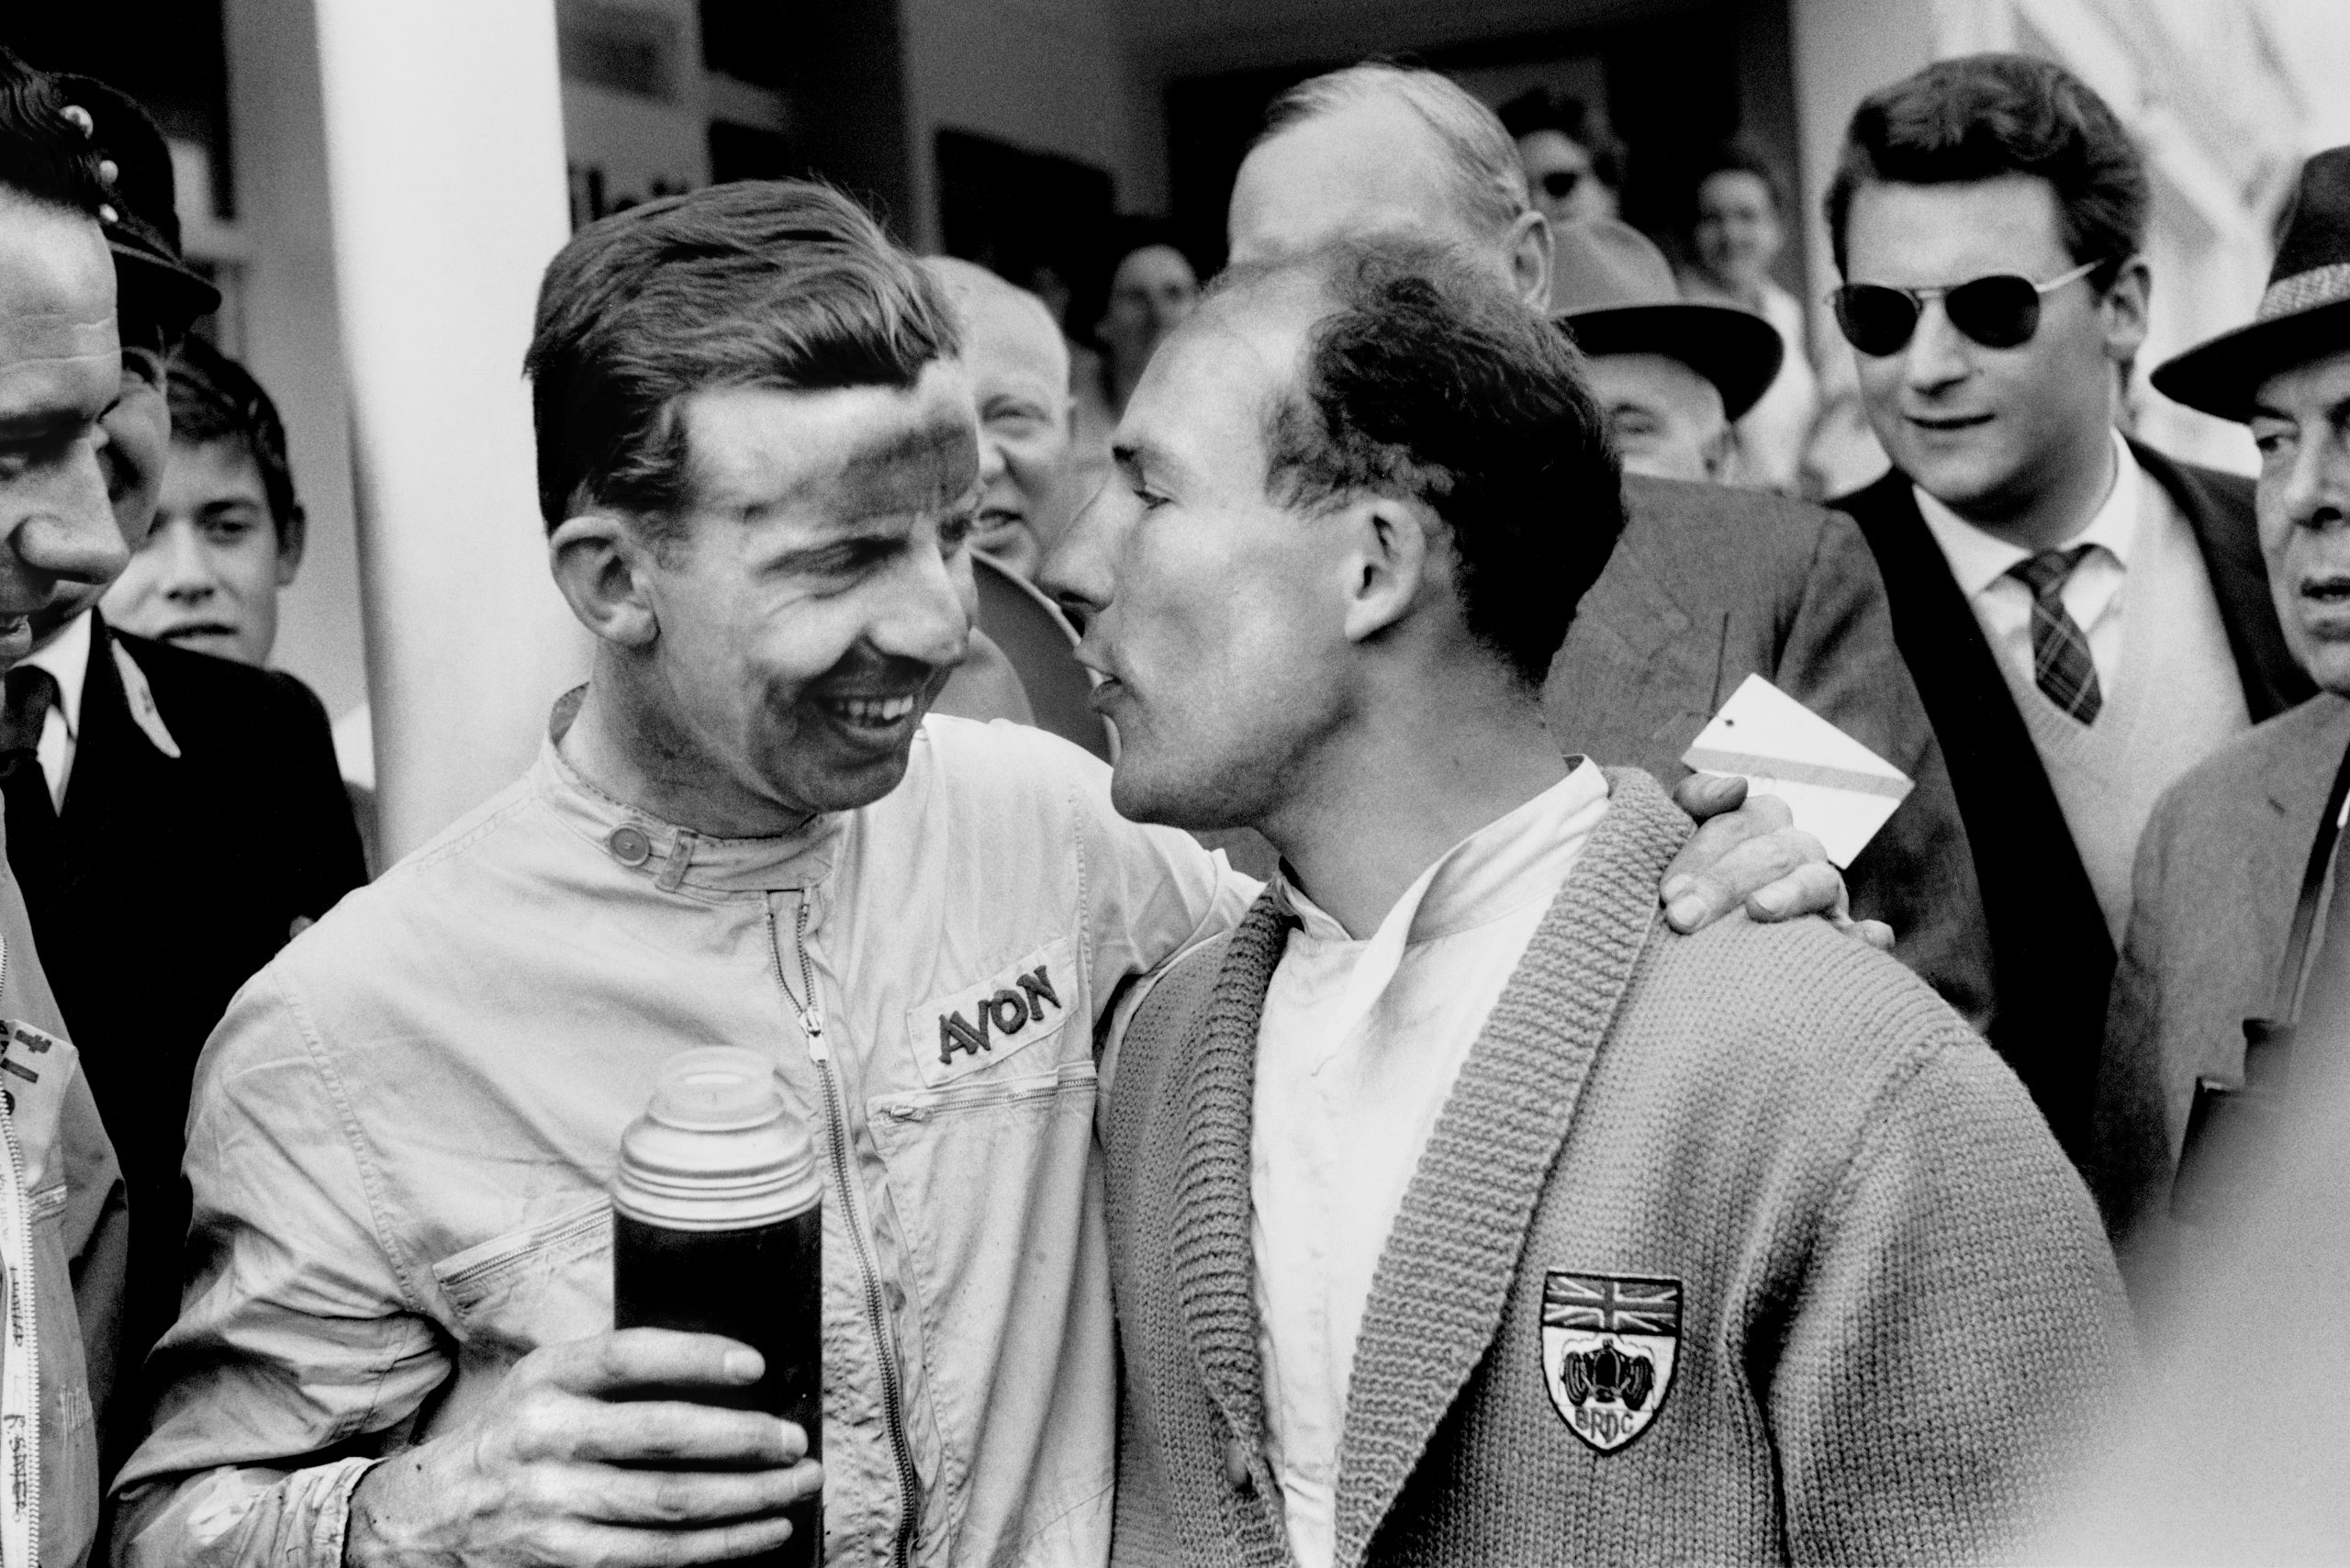 Winner Tony Brooks drinks from a flask with Vanwall team mate Stirling Moss who retired from the race.